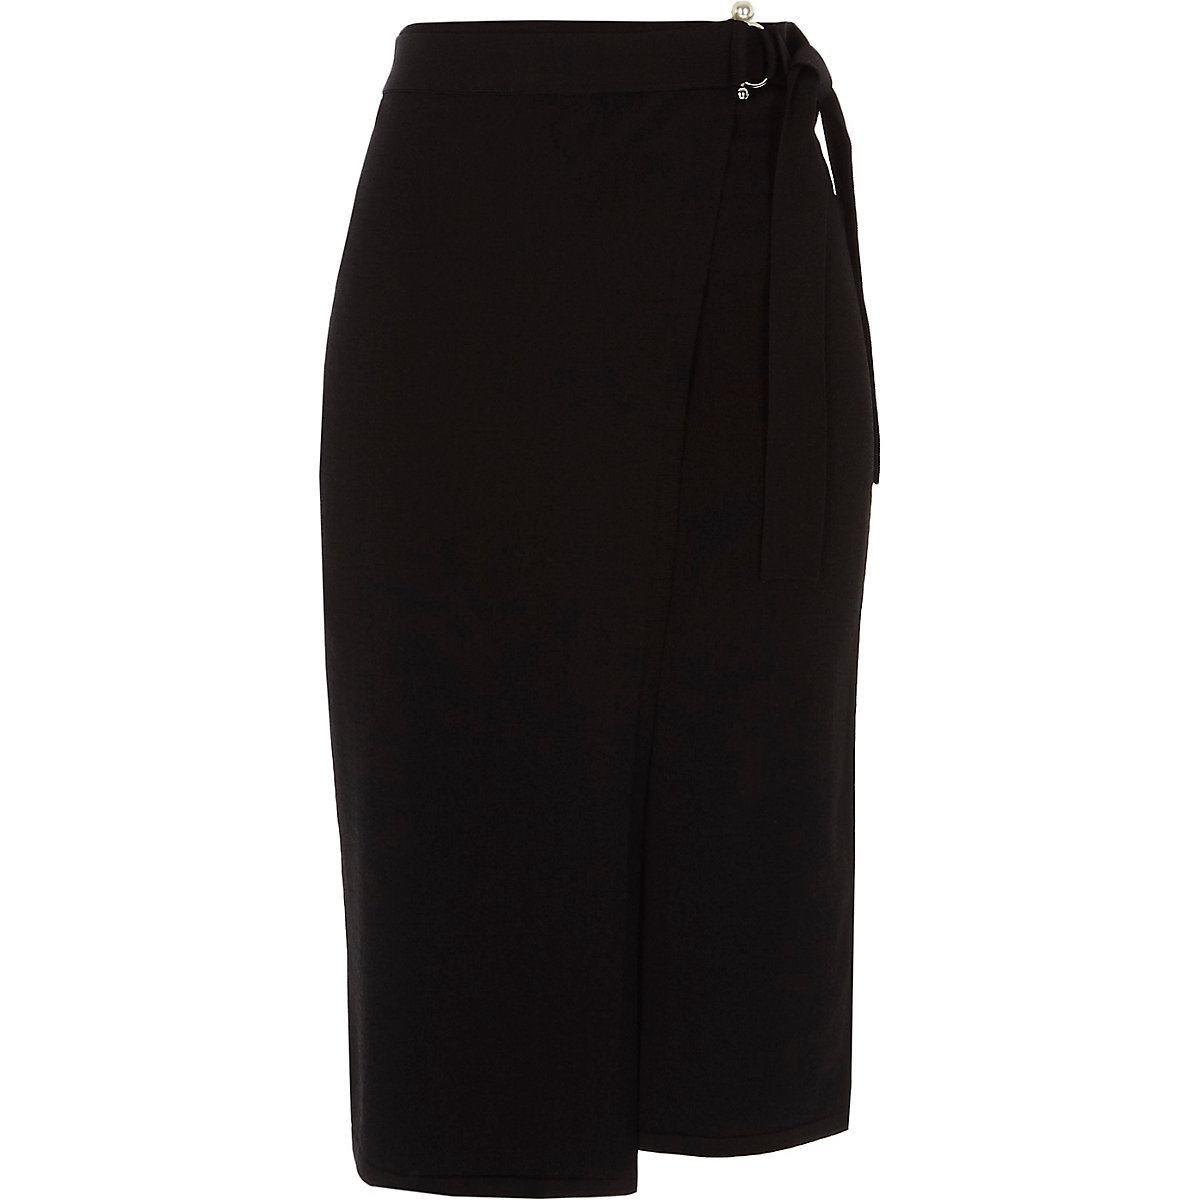 Black pearl D-ring wrap knitted pencil skirt